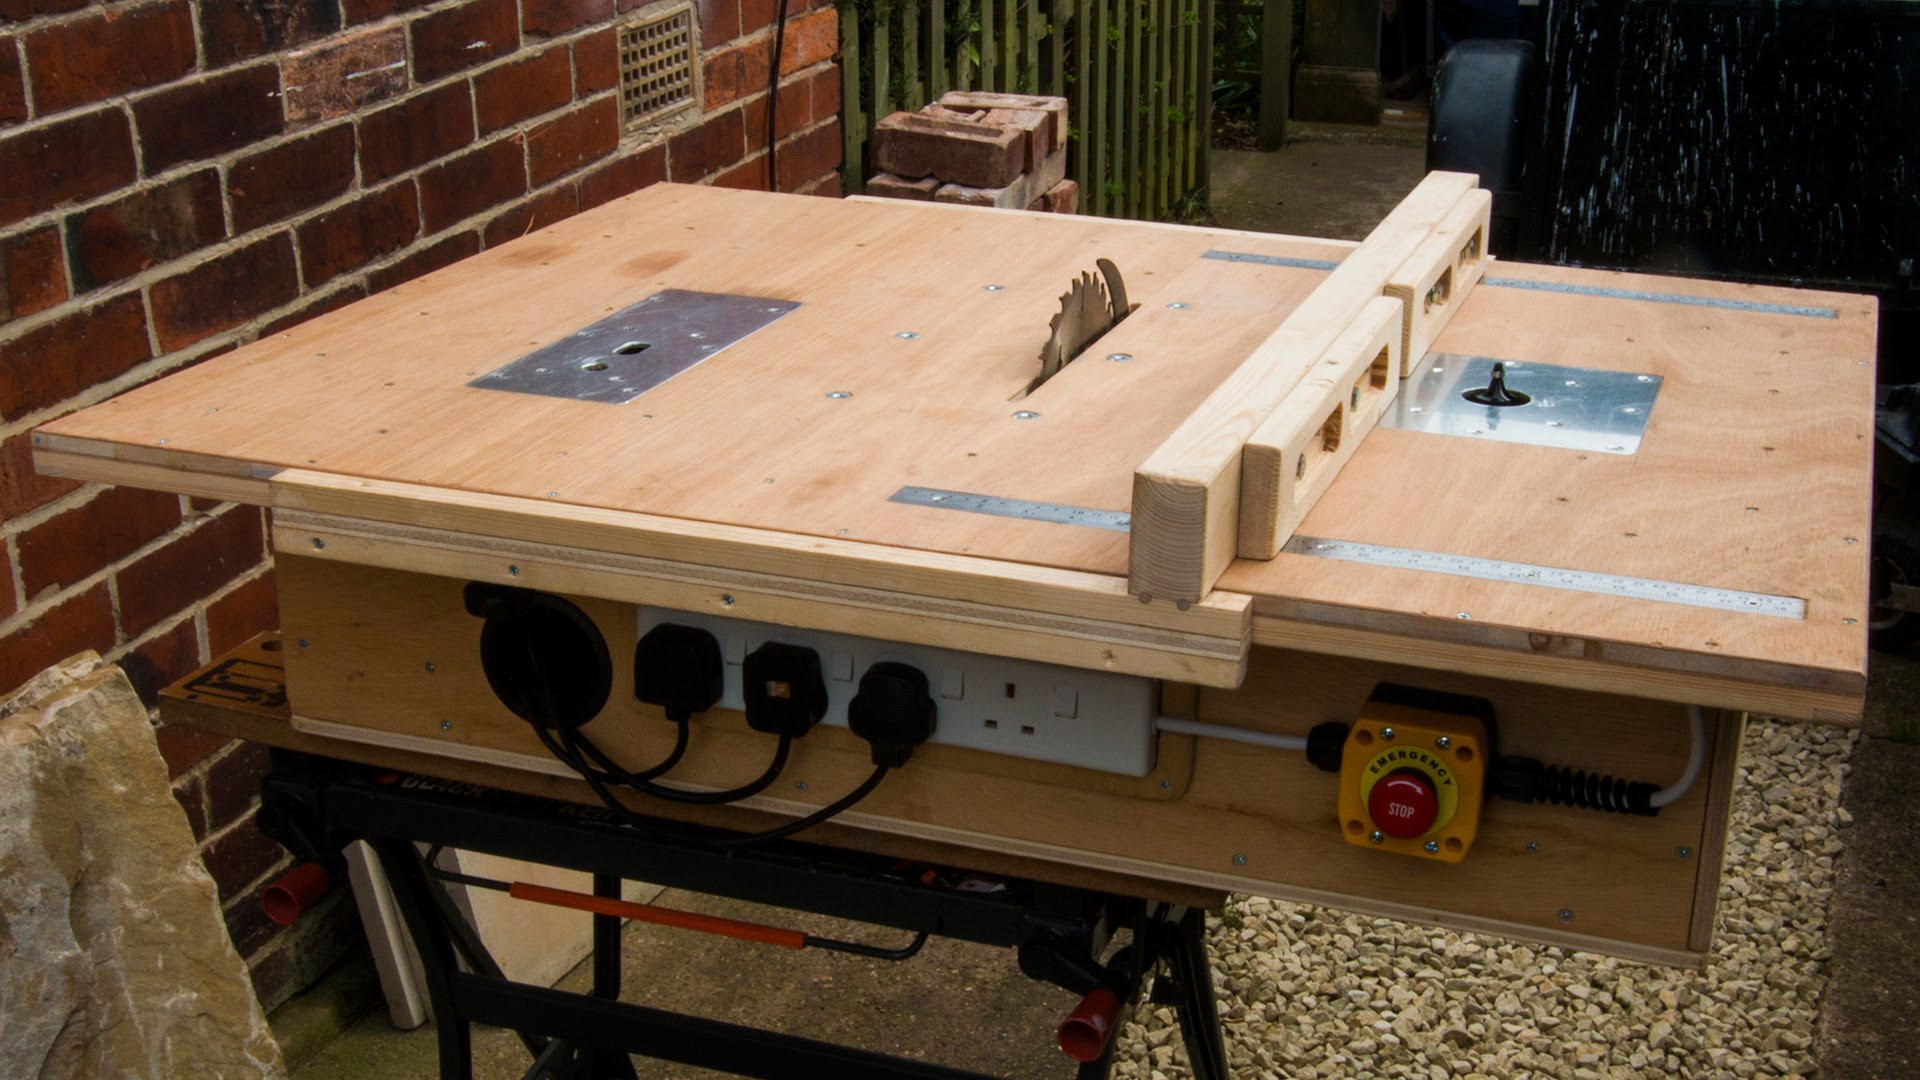 Best ideas about DIY Table Saw Plans . Save or Pin Genius Homemade Table Saw with Router and Jigsaw Now.